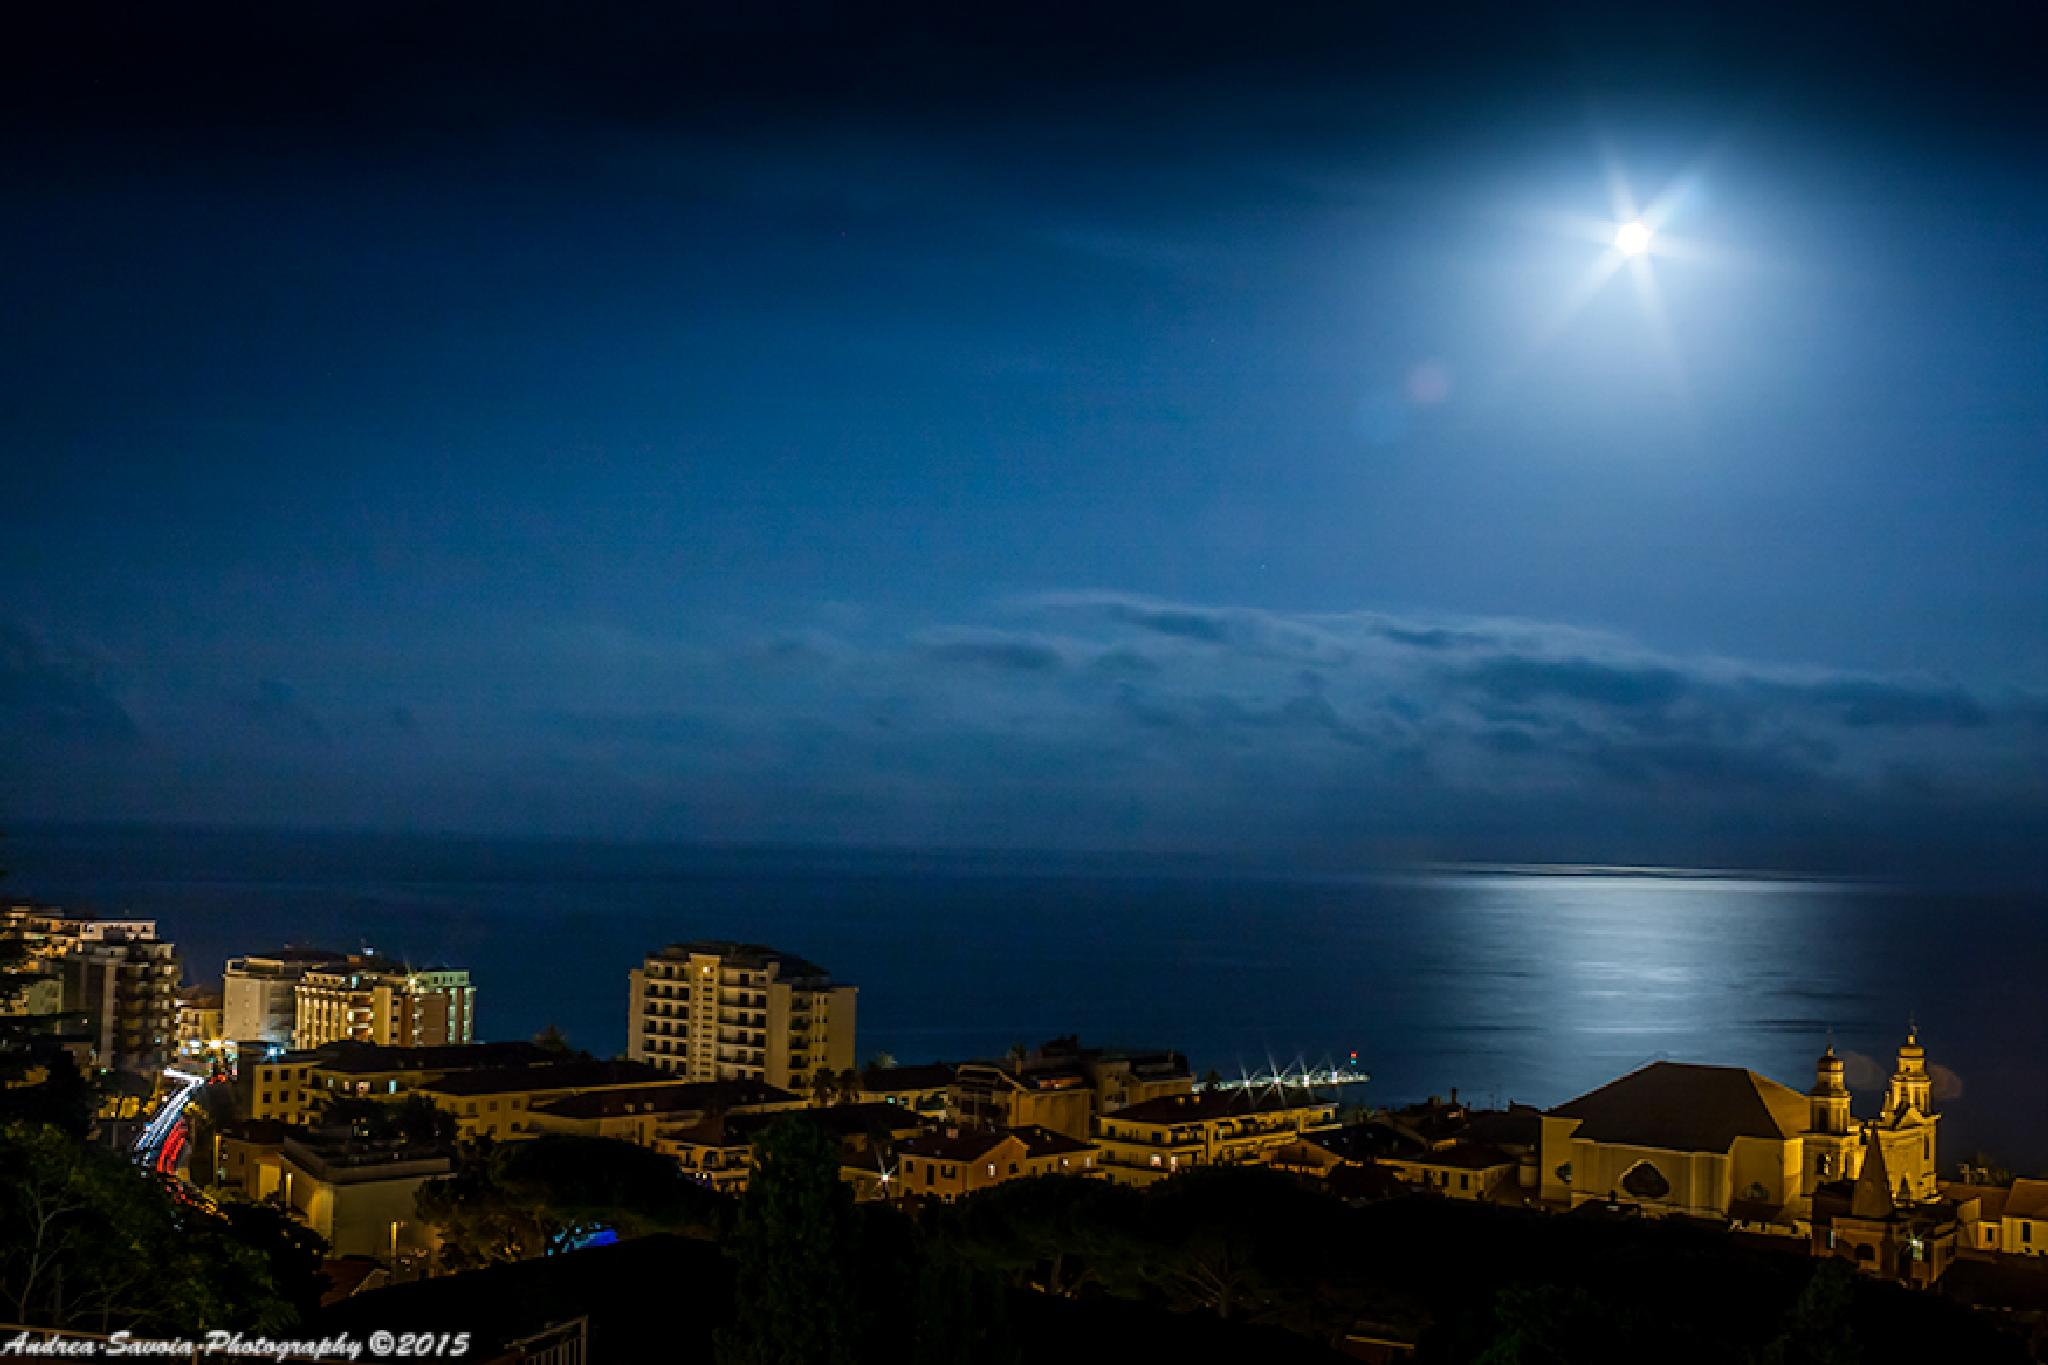 Pietra Ligure By Night by Andrea Savoia Photography